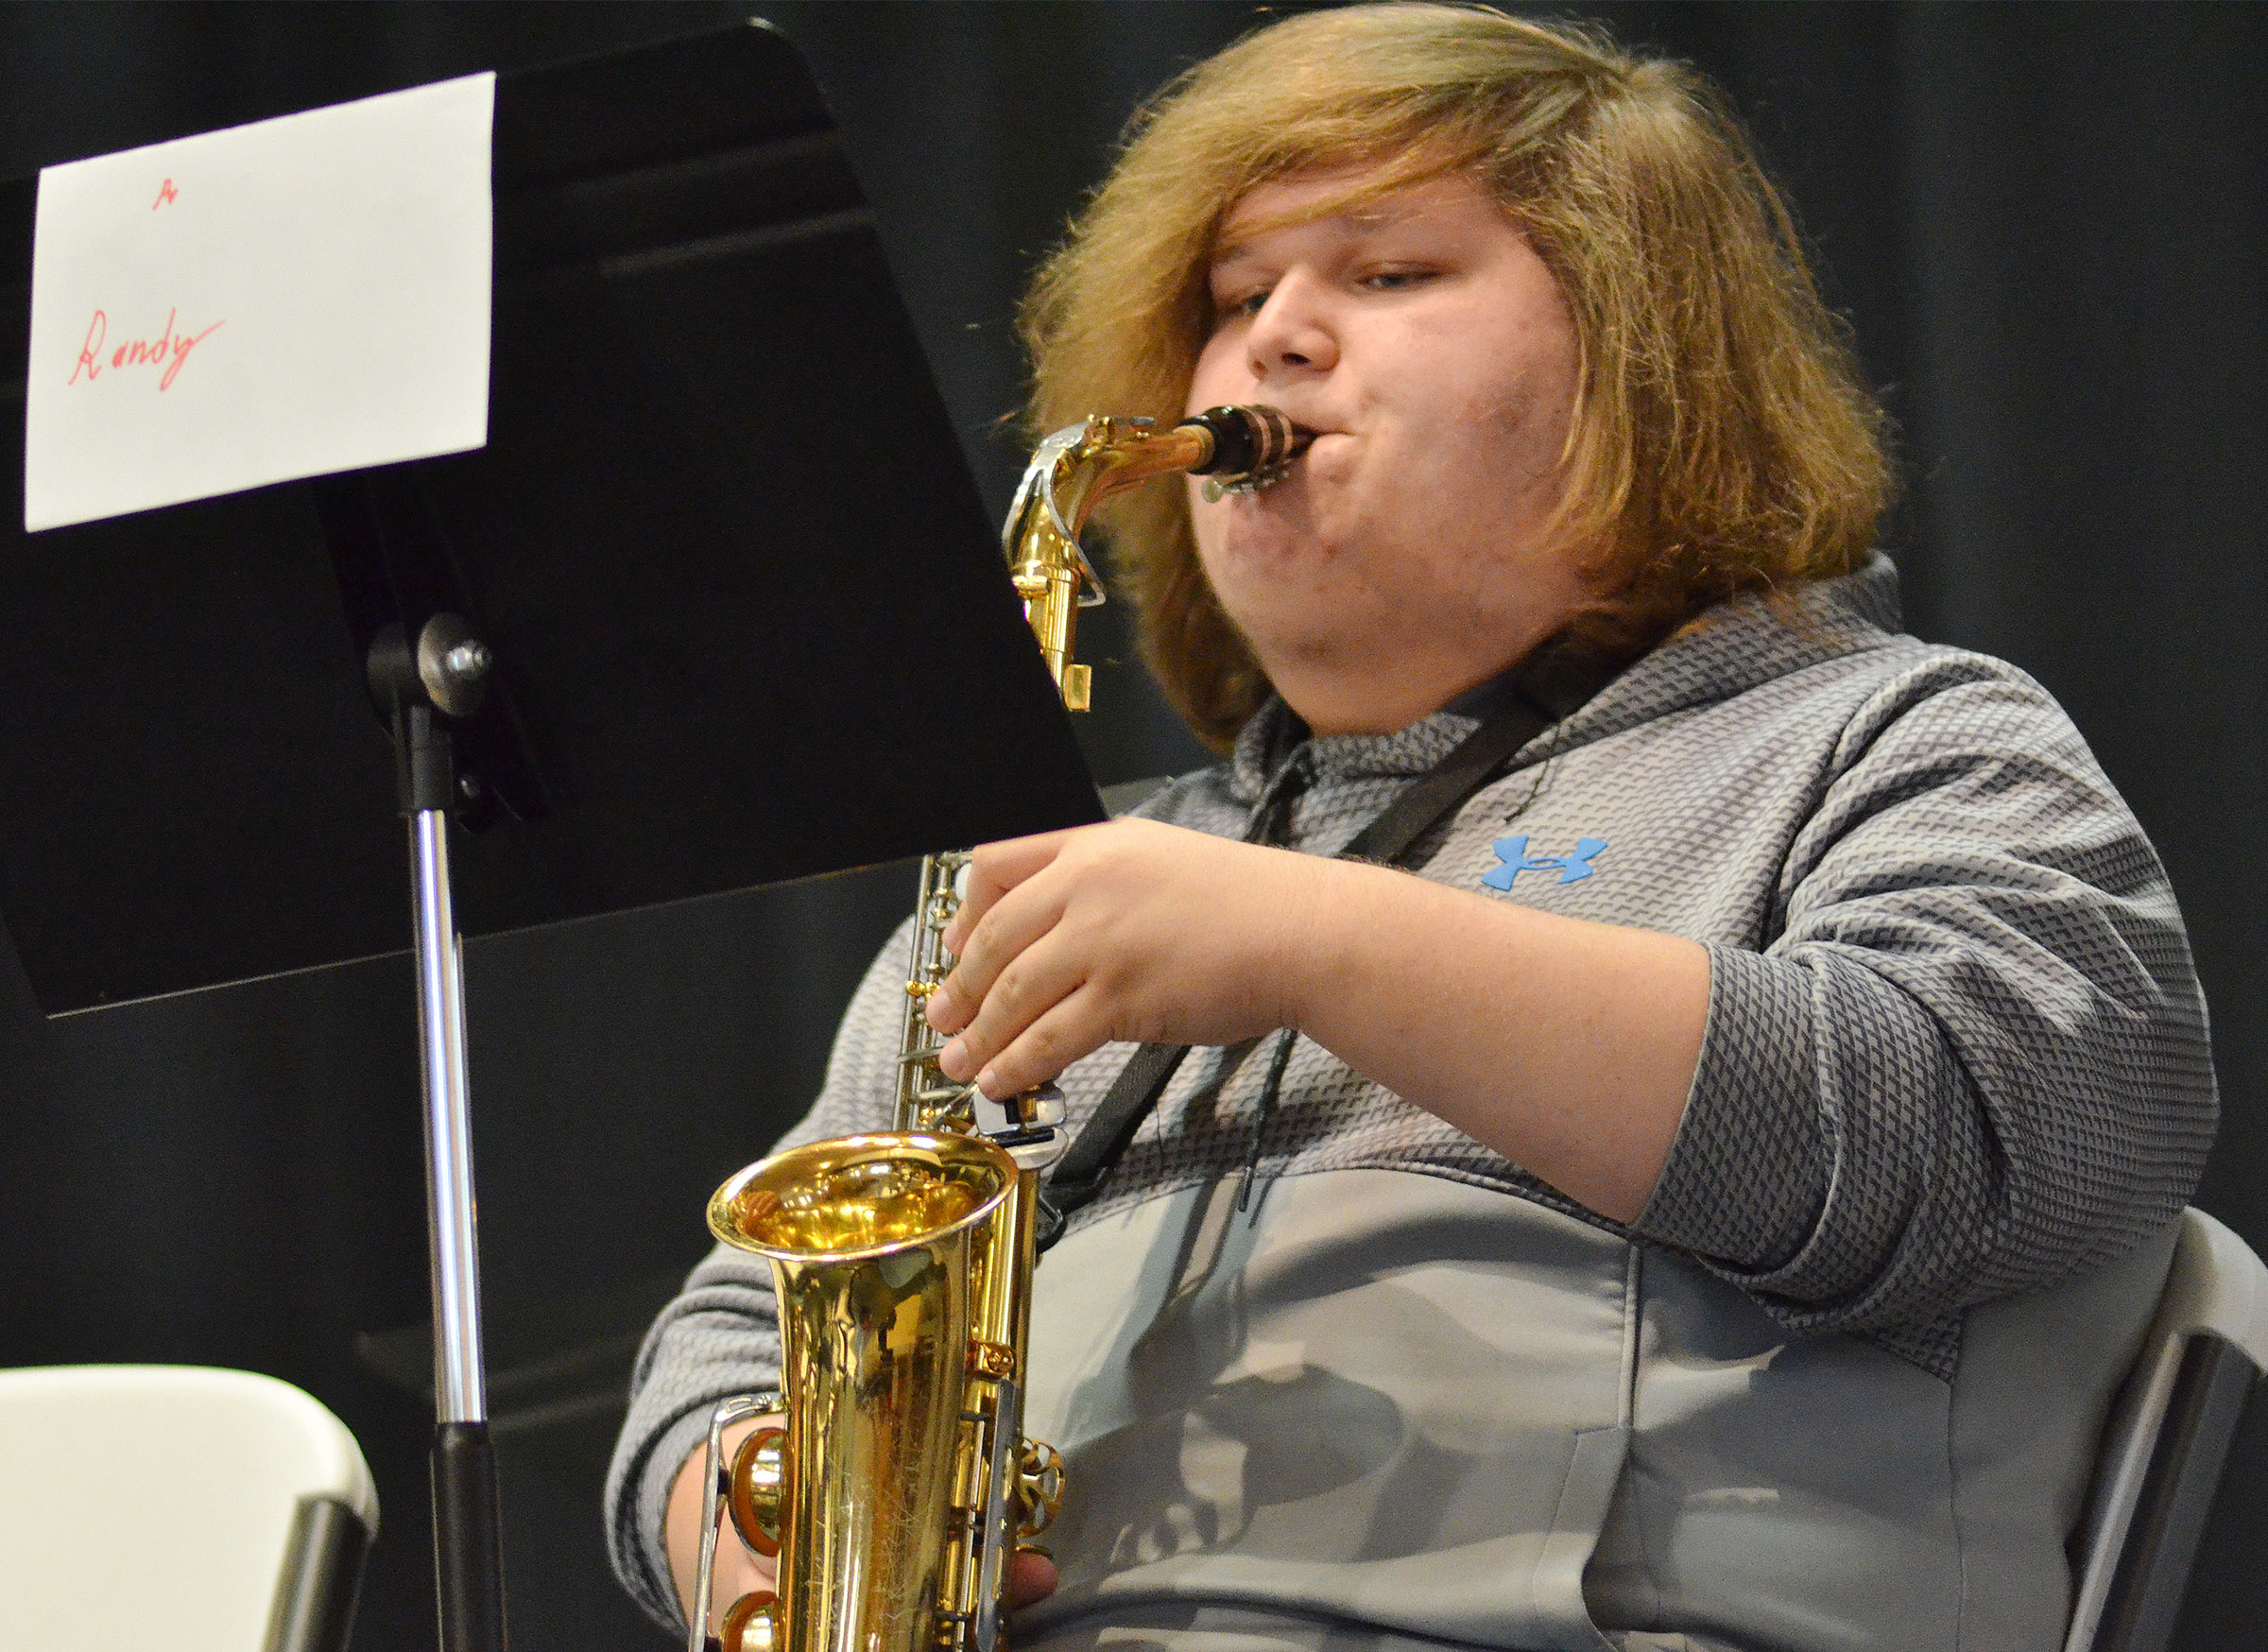 CHS sophomore Randy Harris plays saxophone.